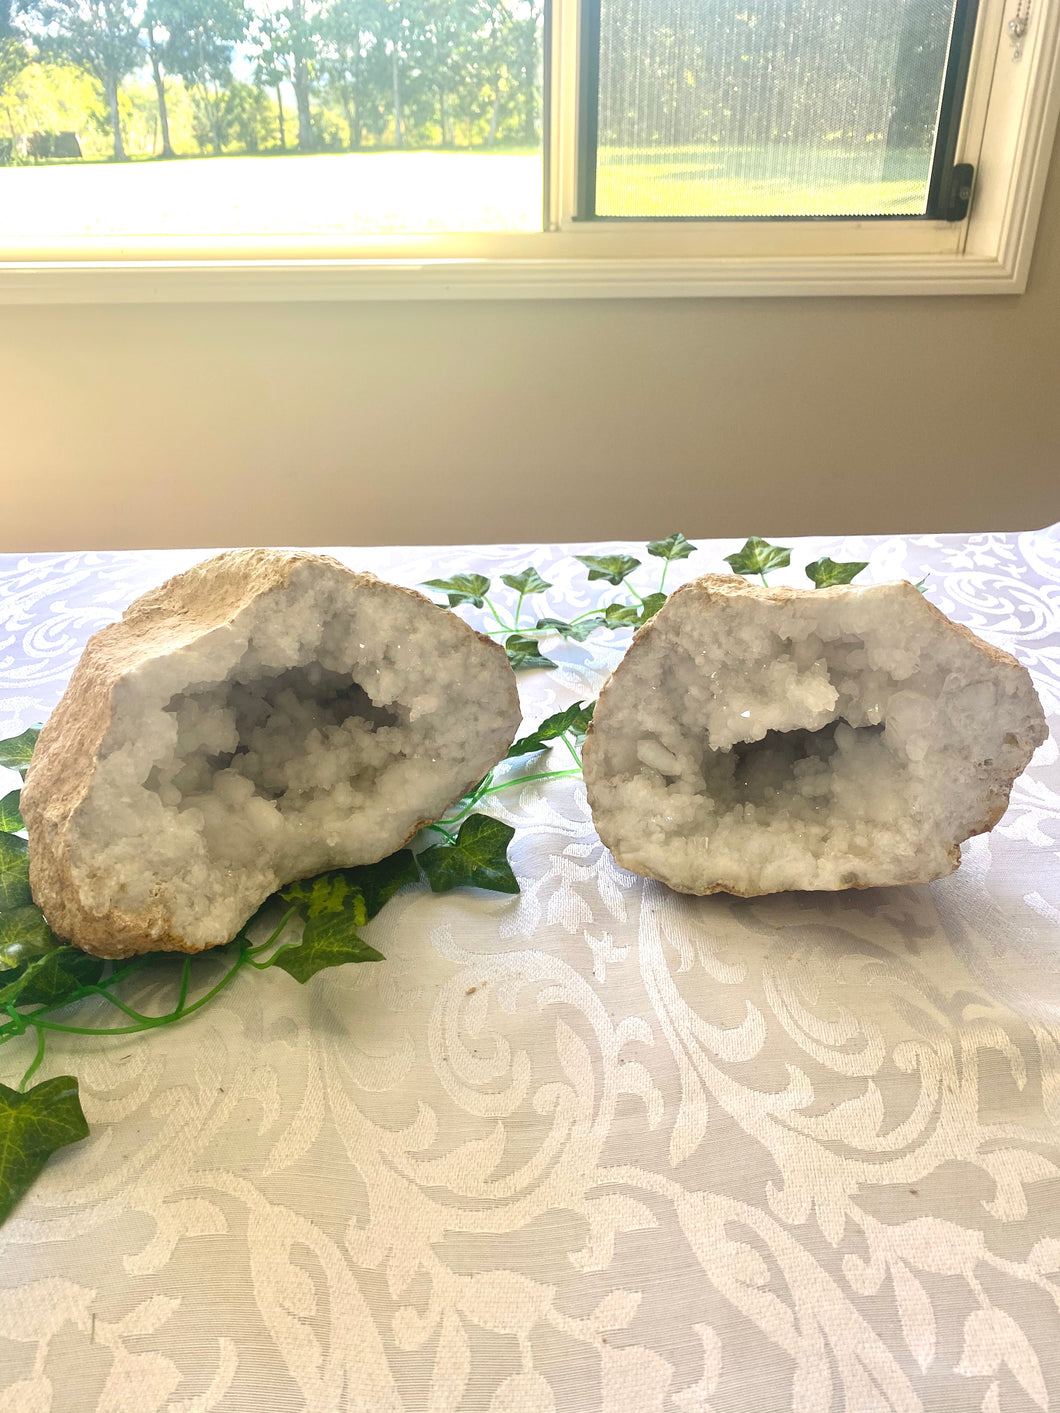 Large Clear Quartz crystal geode - home décor and table display AGMD0003